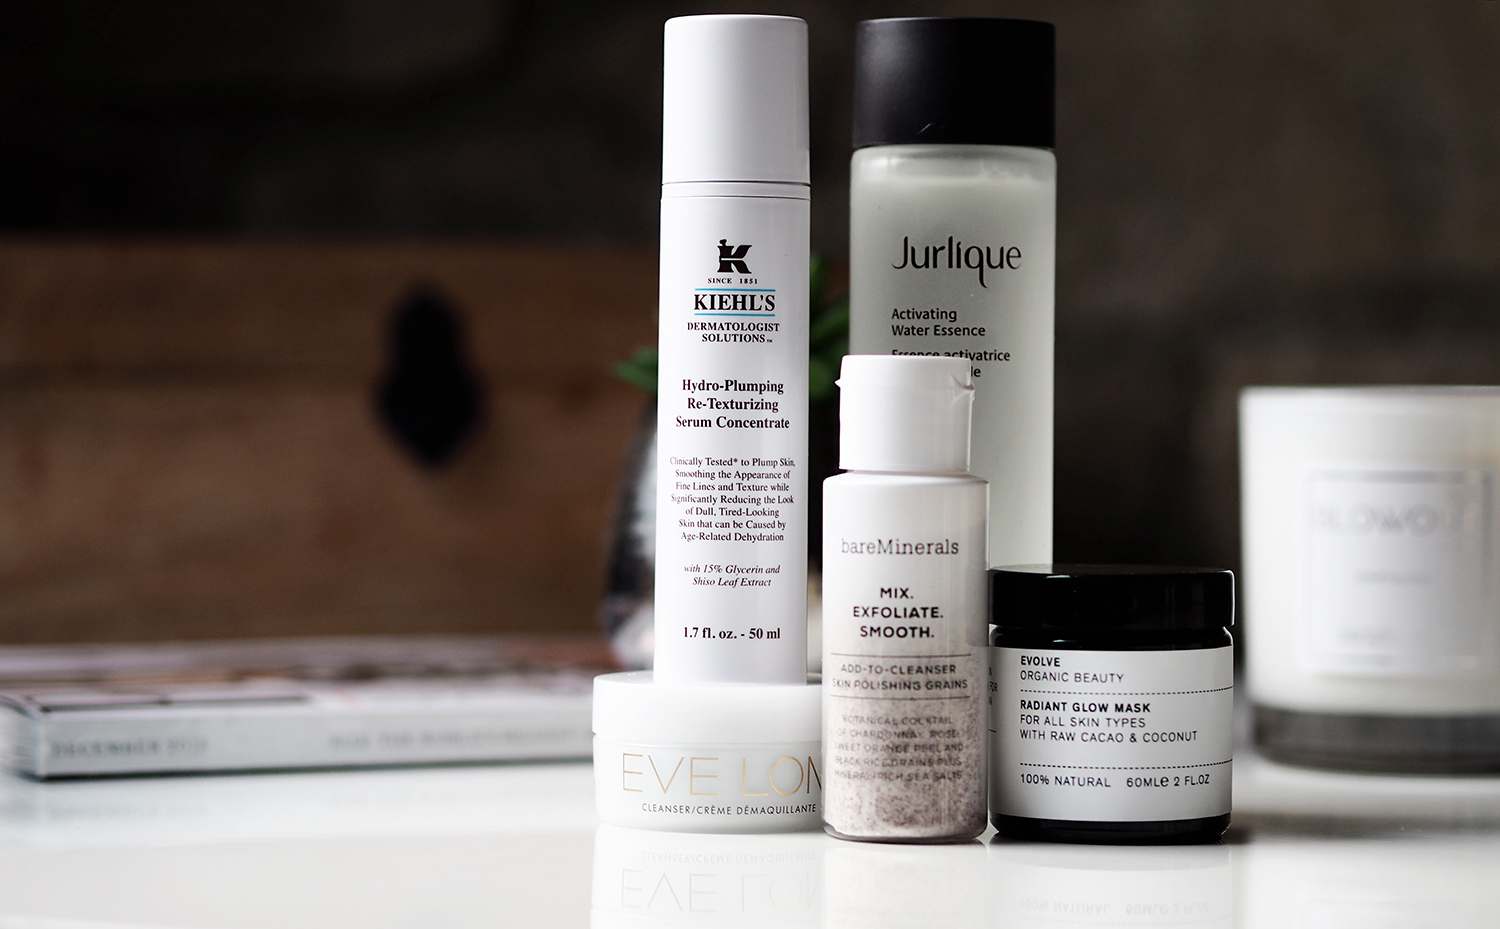 skincare-on-trial-with-kiehls-eve-lom-bare-minerals-jurlique-evolve-zoe-newlove-beauty-blogger